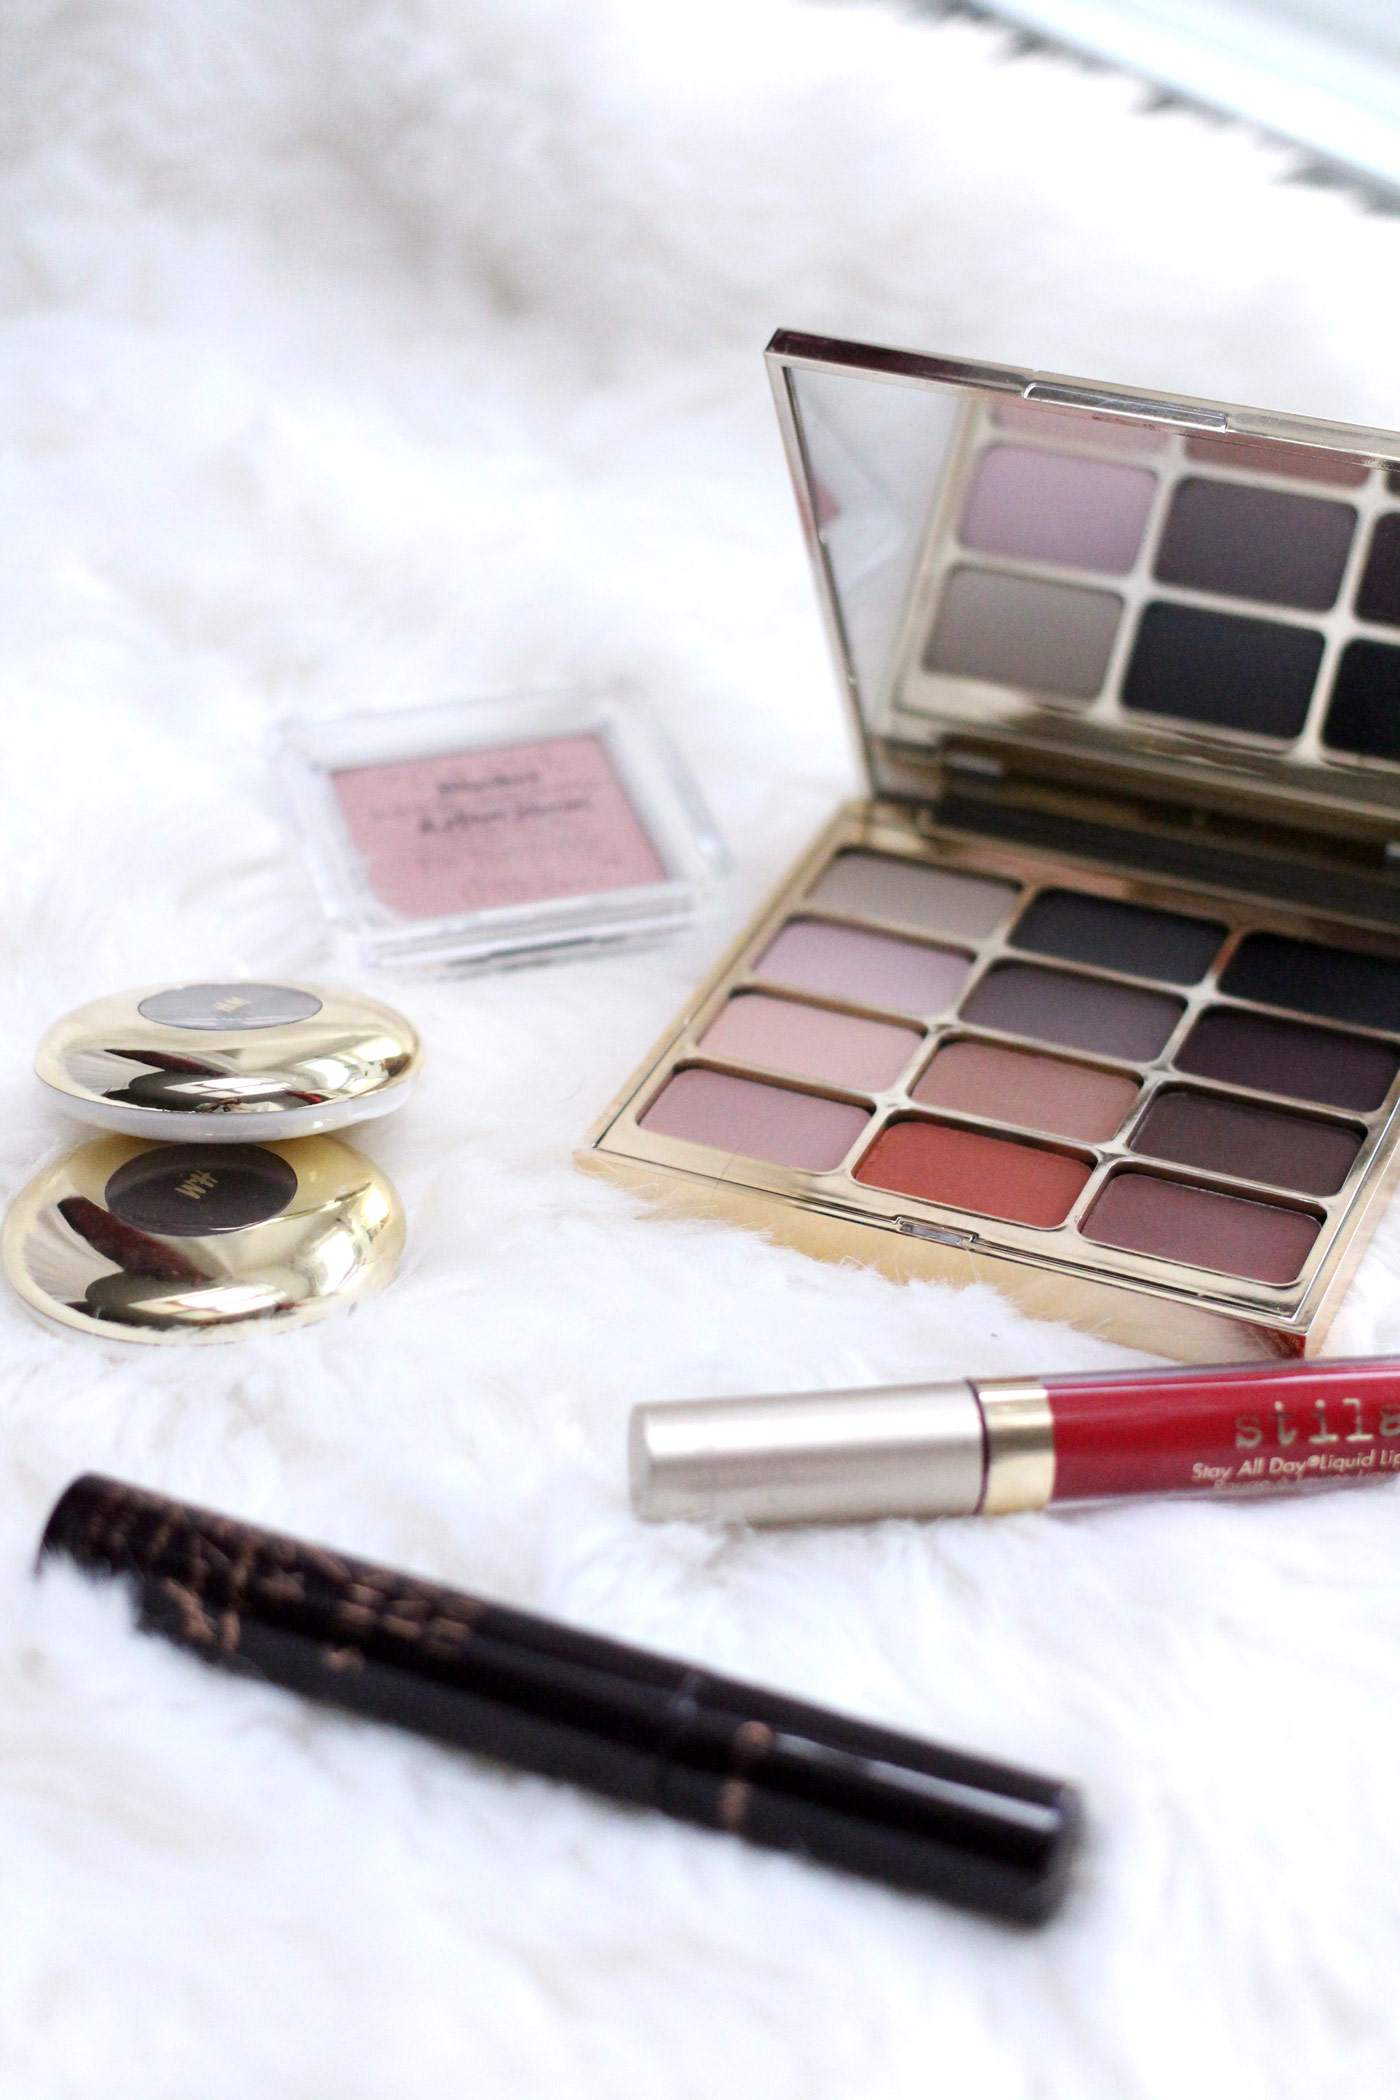 beauty-favourites-october-stila-hm-charlotte-tilbury-mascara